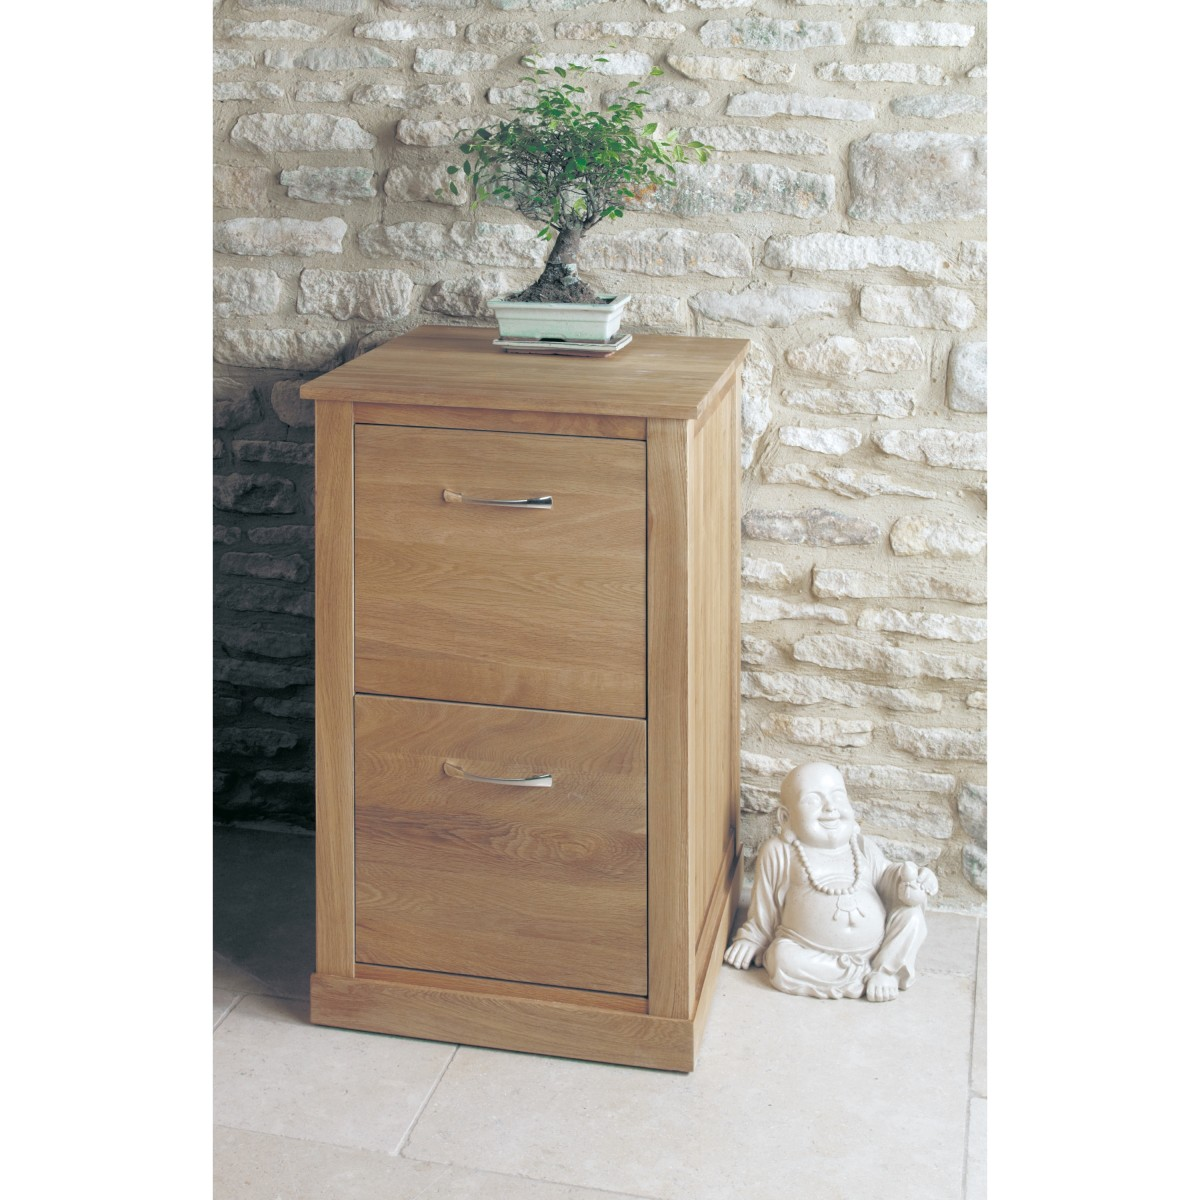 baumhaus mobel solid oak 2 drawer filing cabinet cor07a baumhaus mobel solid oak